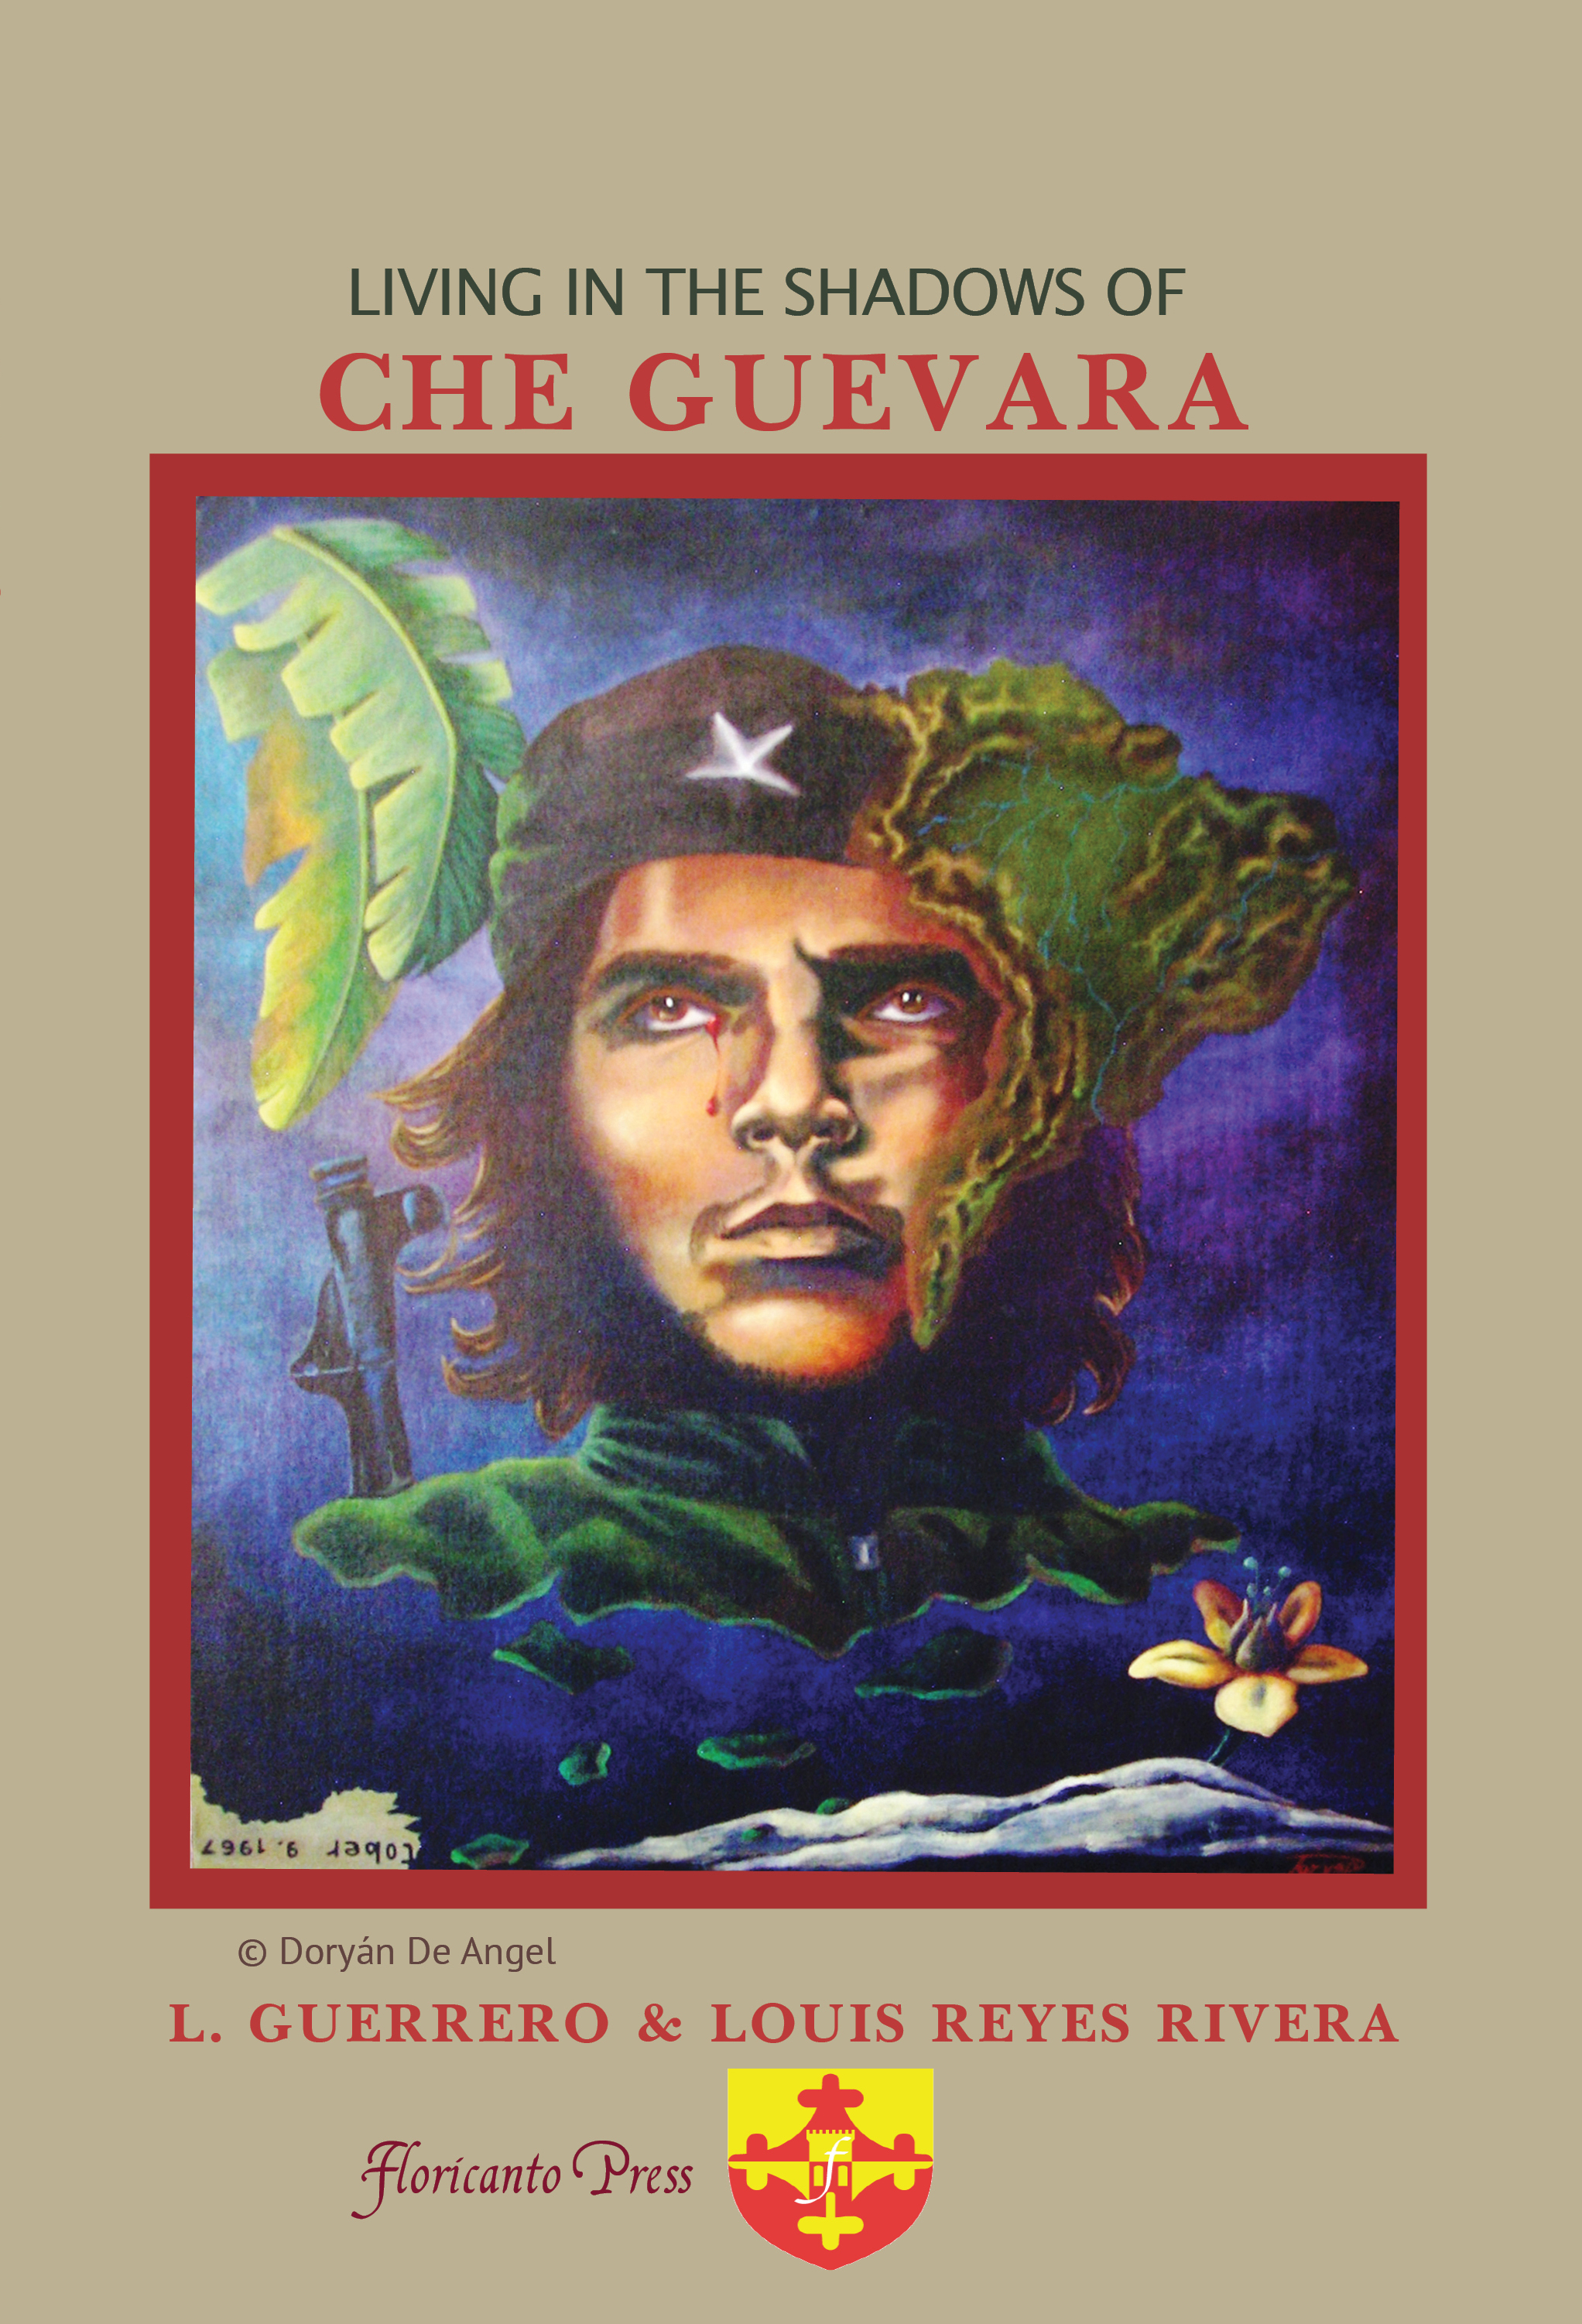 Living in the Shadows of  Che Guevara. By L. Guerrero and Louis Reyes Rivera.